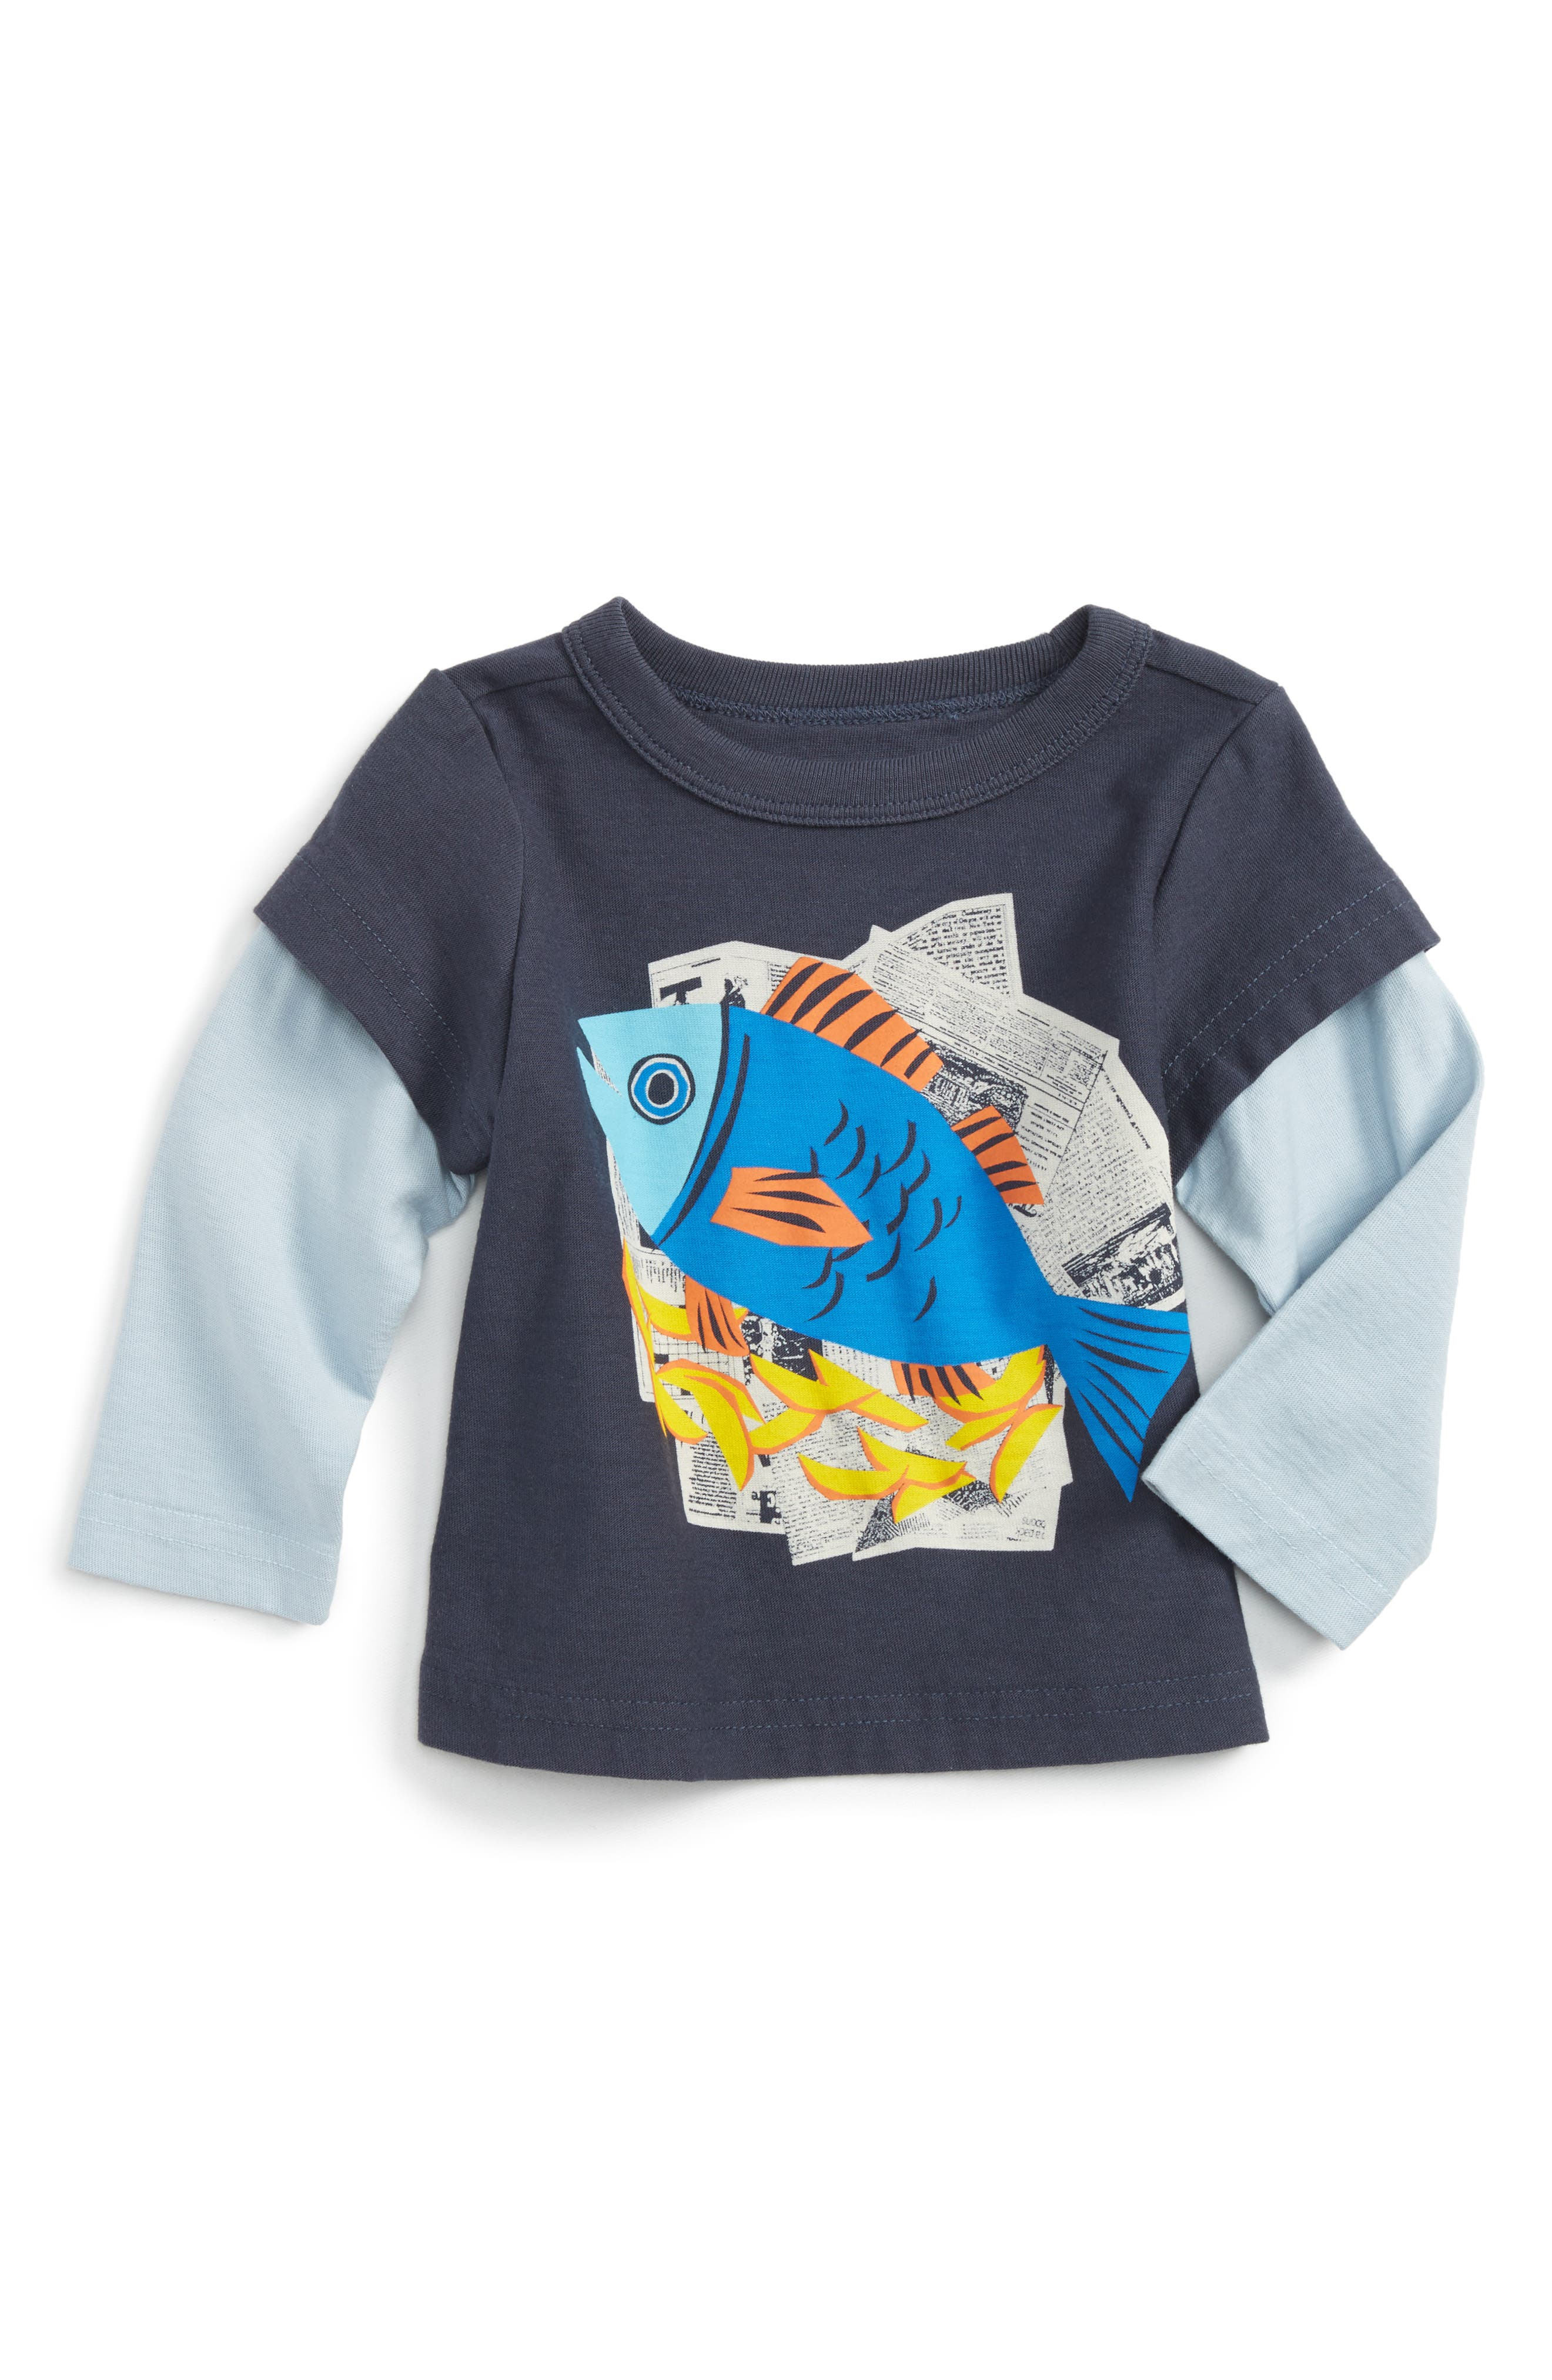 Main Image - Tea Collection Fish & Chips Graphic T-Shirt (Baby Boys)